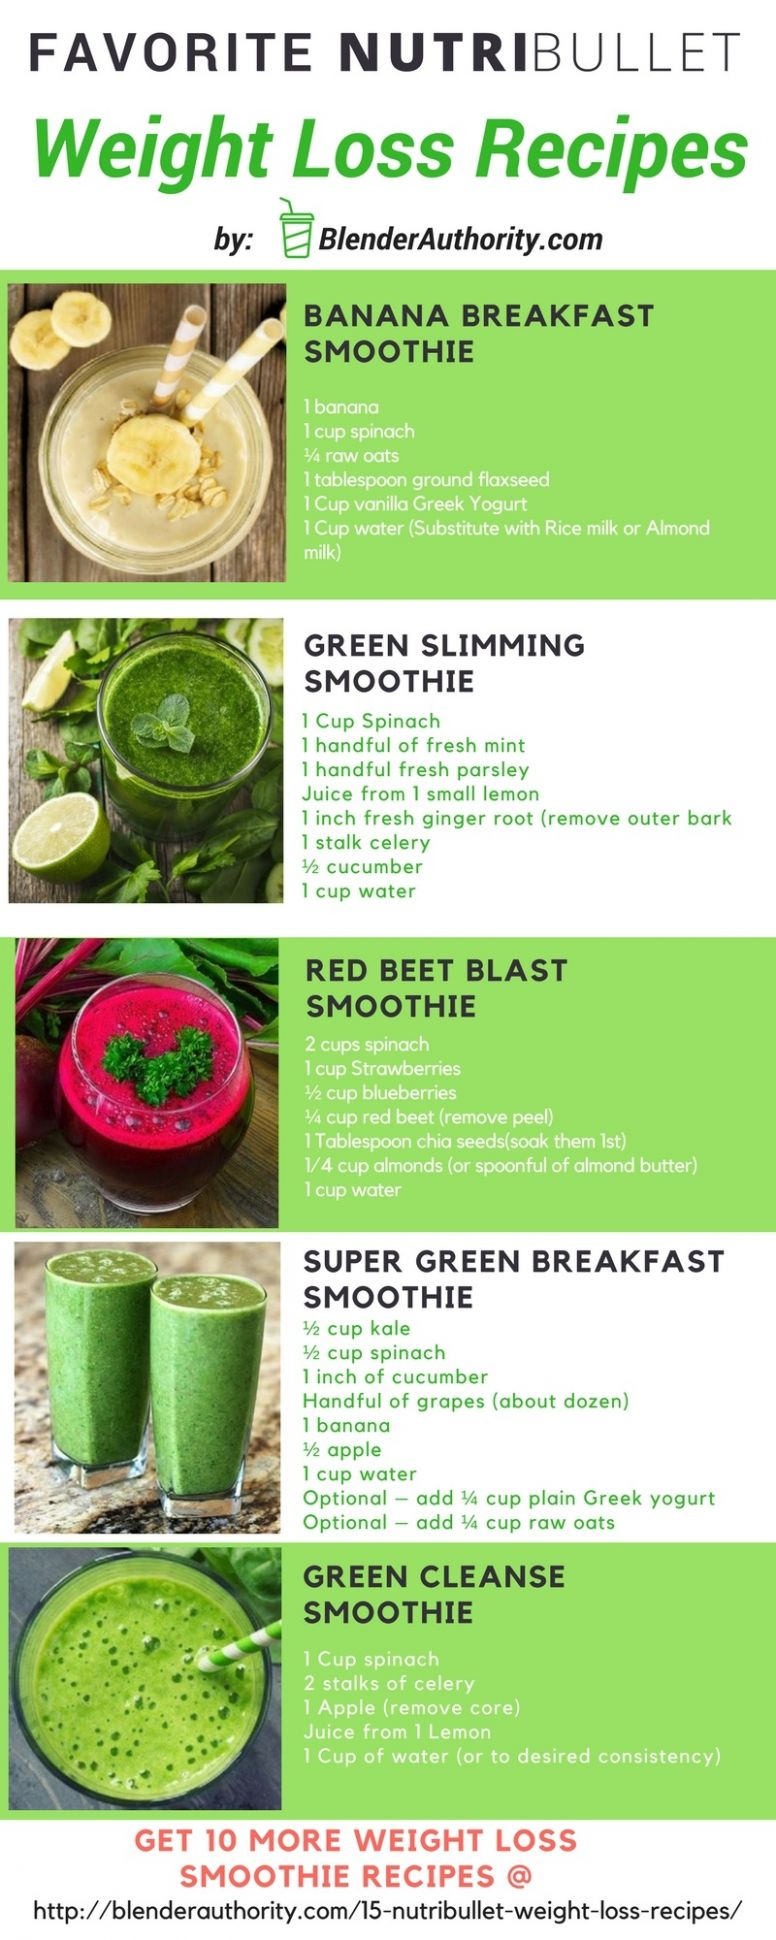 9 Nutribullet Weight Loss Recipes